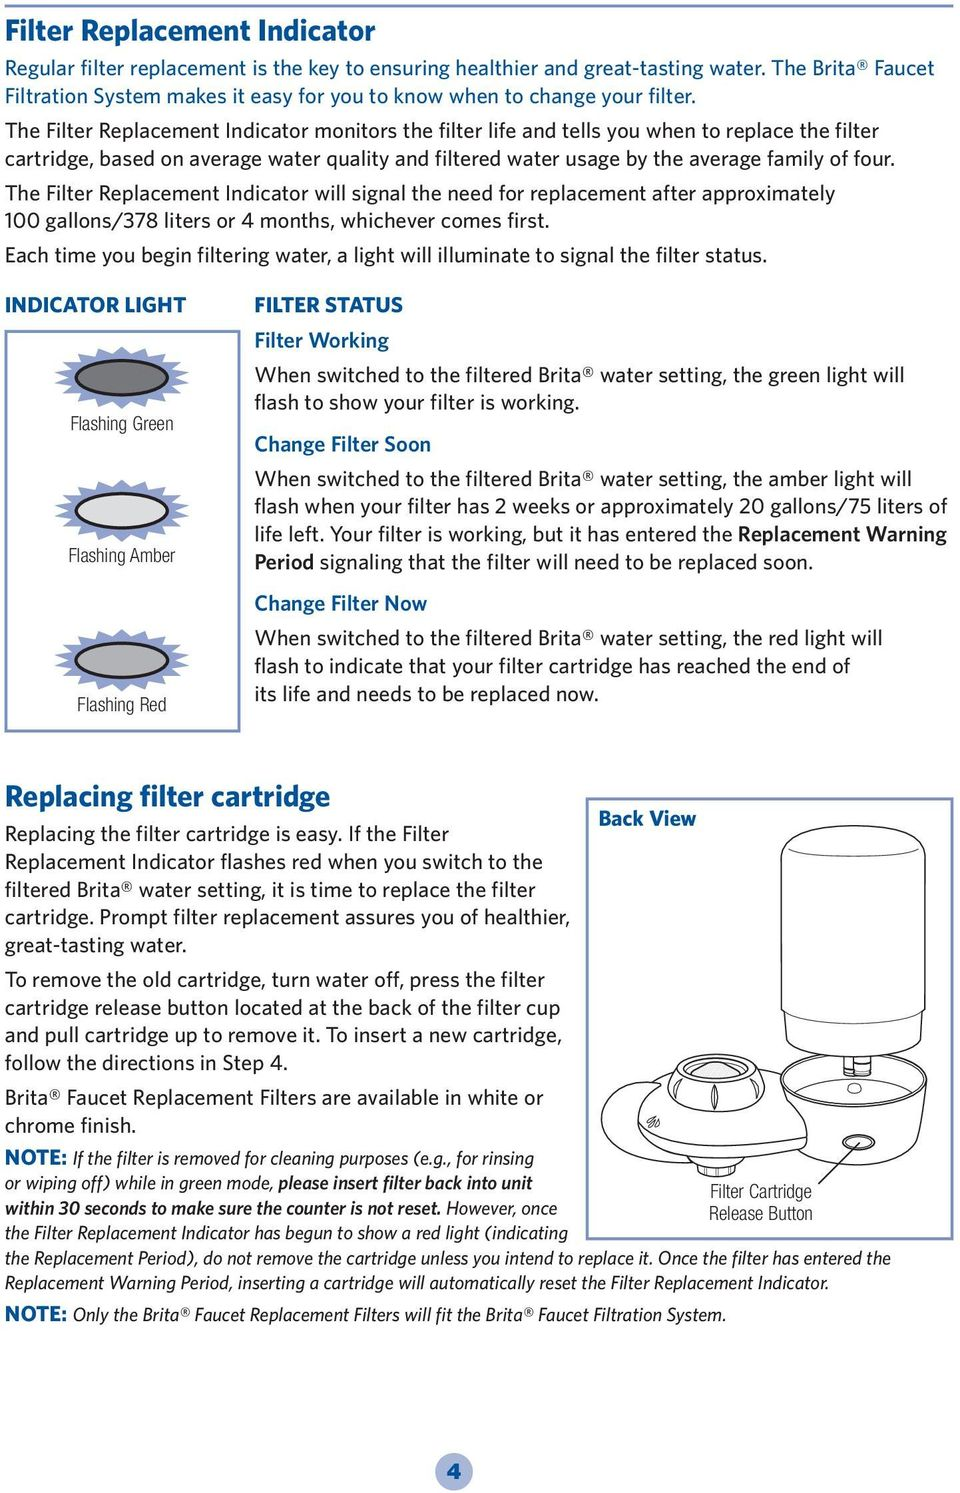 The Filter Replacement Indicator monitors the filter life and tells you when to replace the filter cartridge, based on average water quality and filtered water usage by the average family of four.